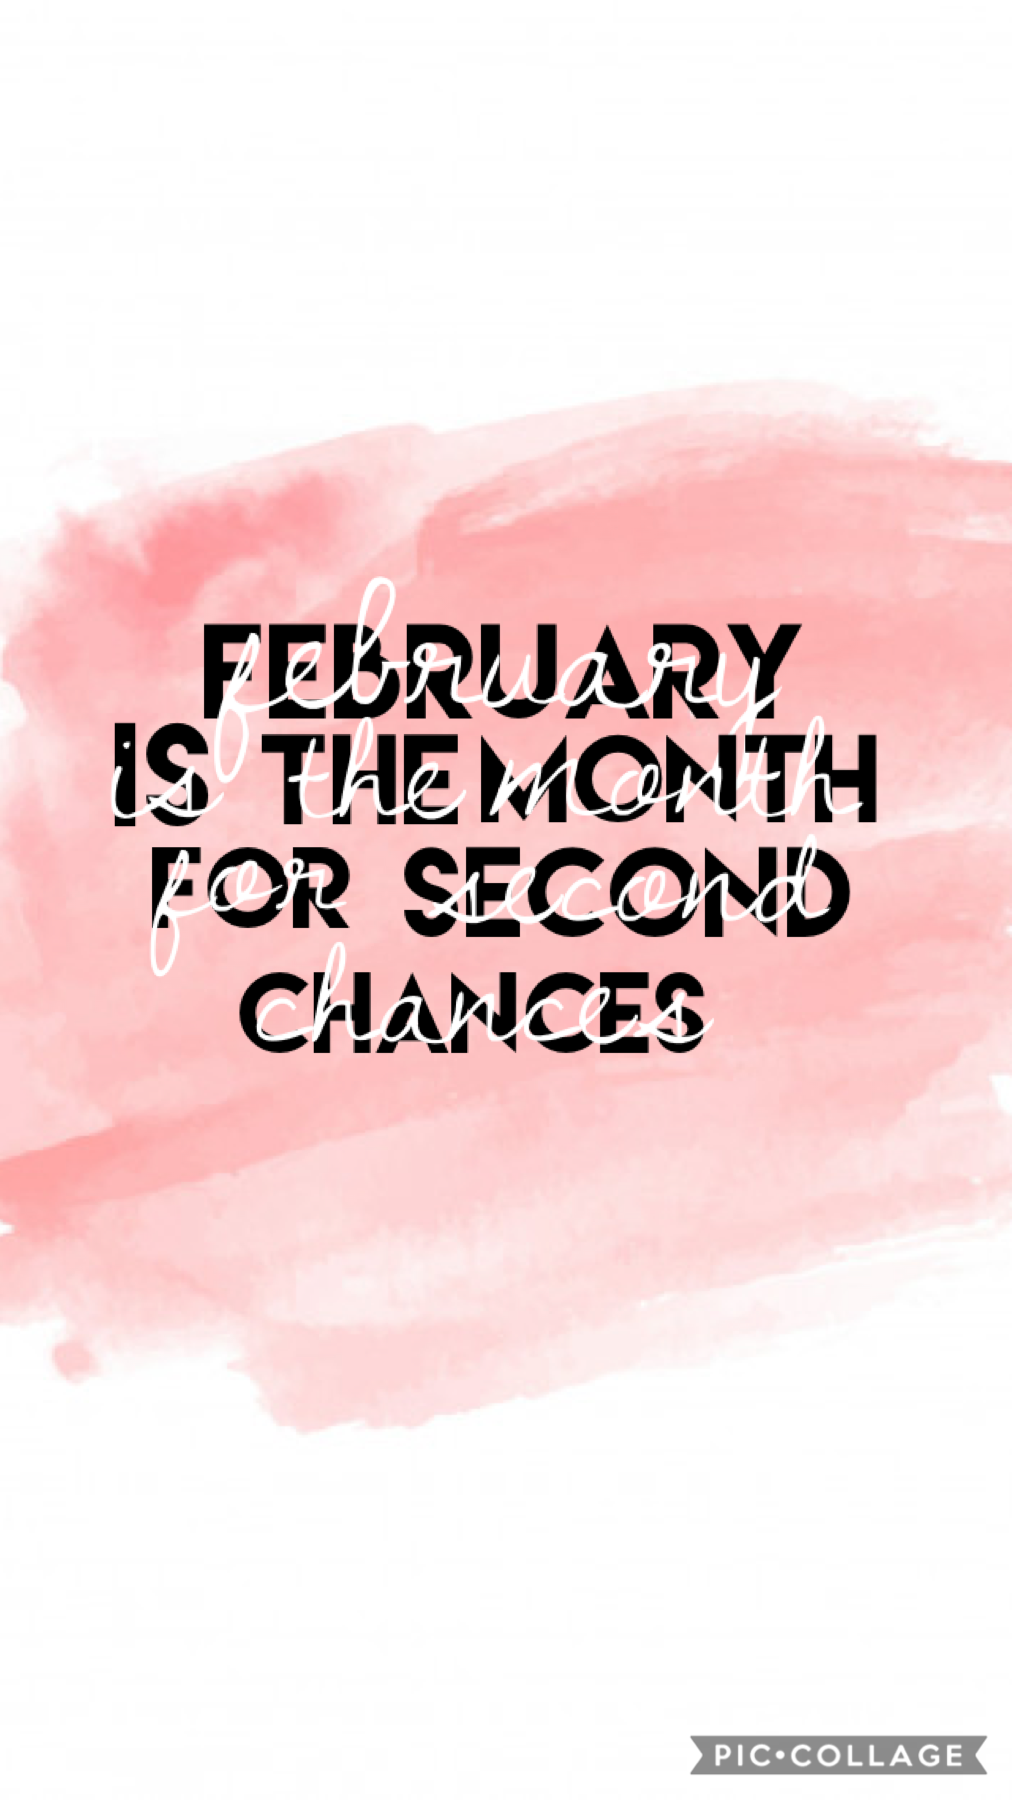 Hi everyone!! I'm back now, sorry I haven't posted in a while. And happy February have a great month!!